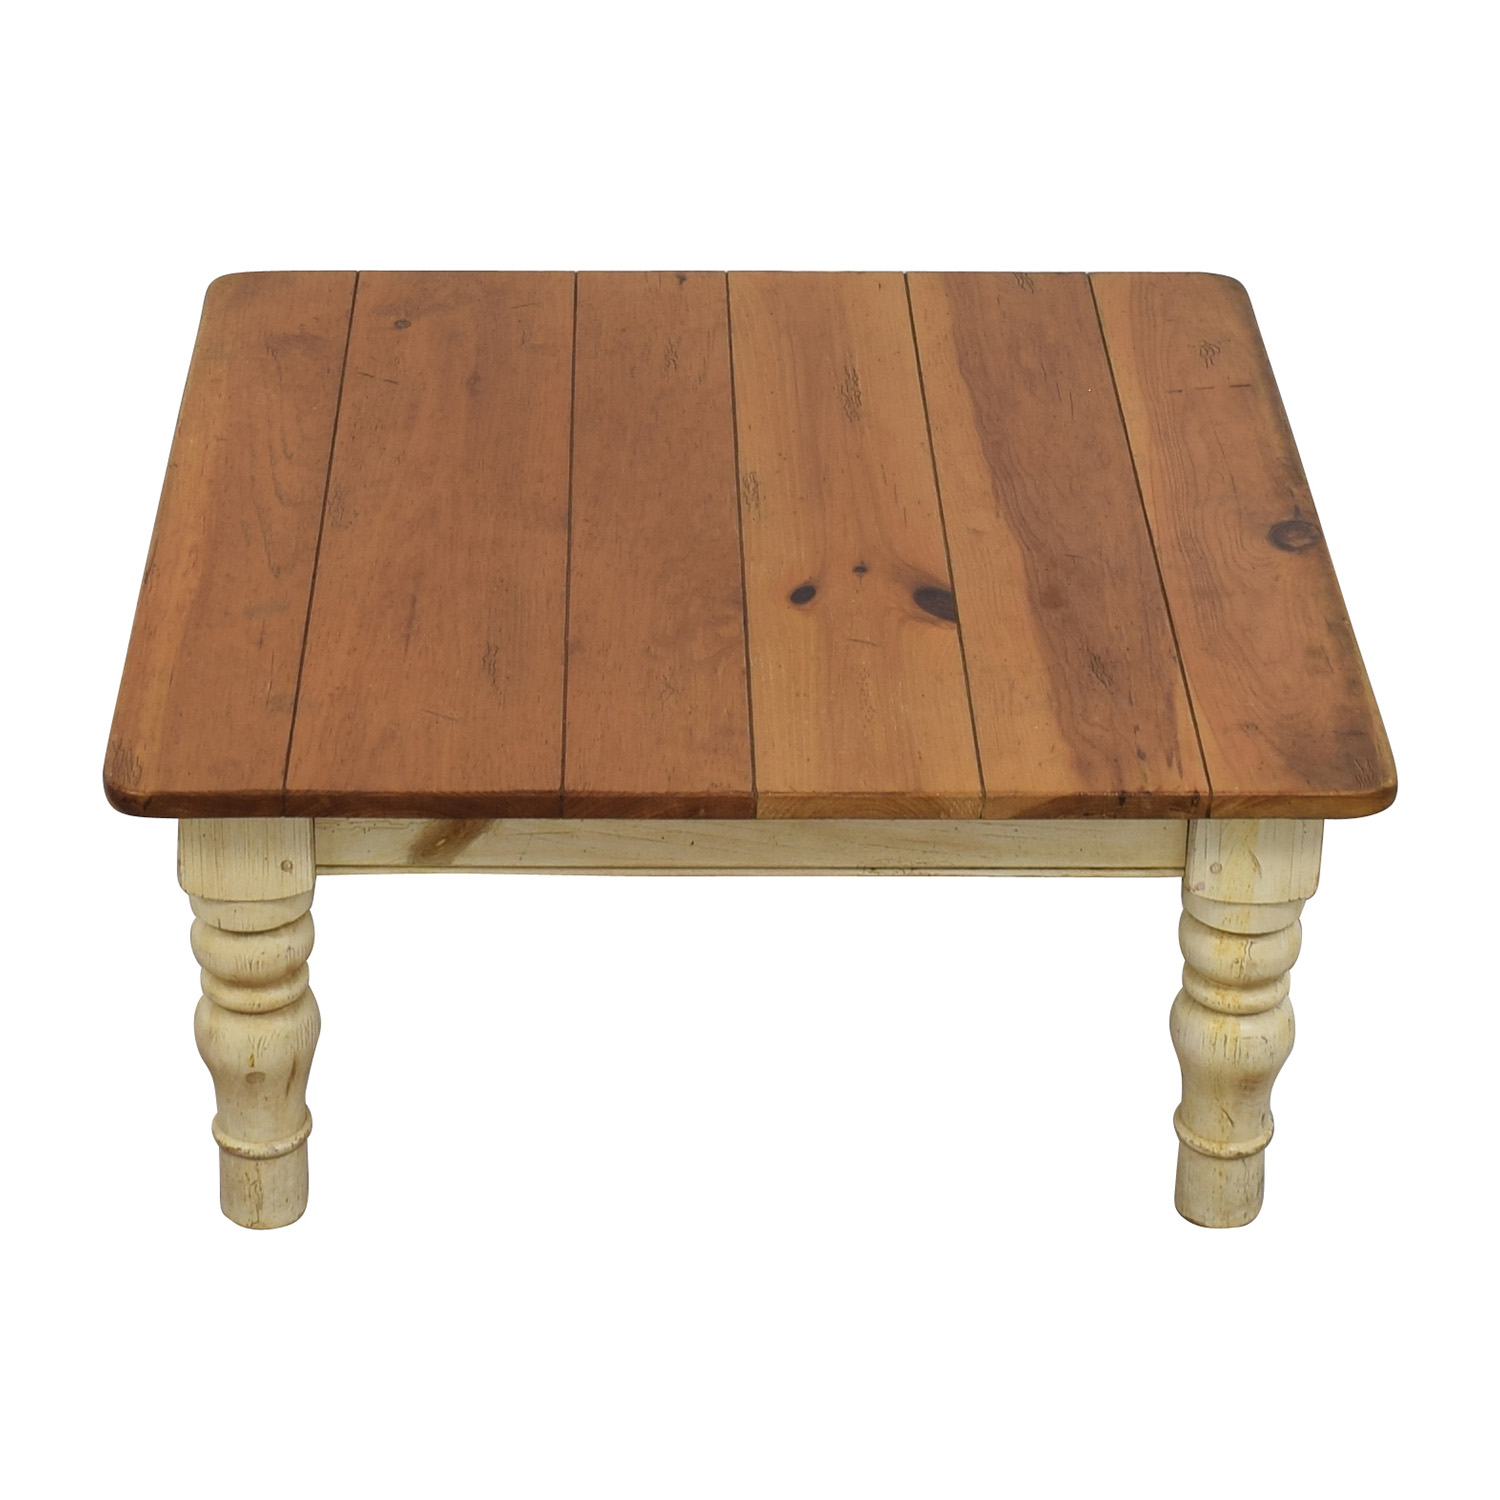 Ethan Allen Ethan Allen Farmhouse Cherry Wood Coffee Table Coffee Tables